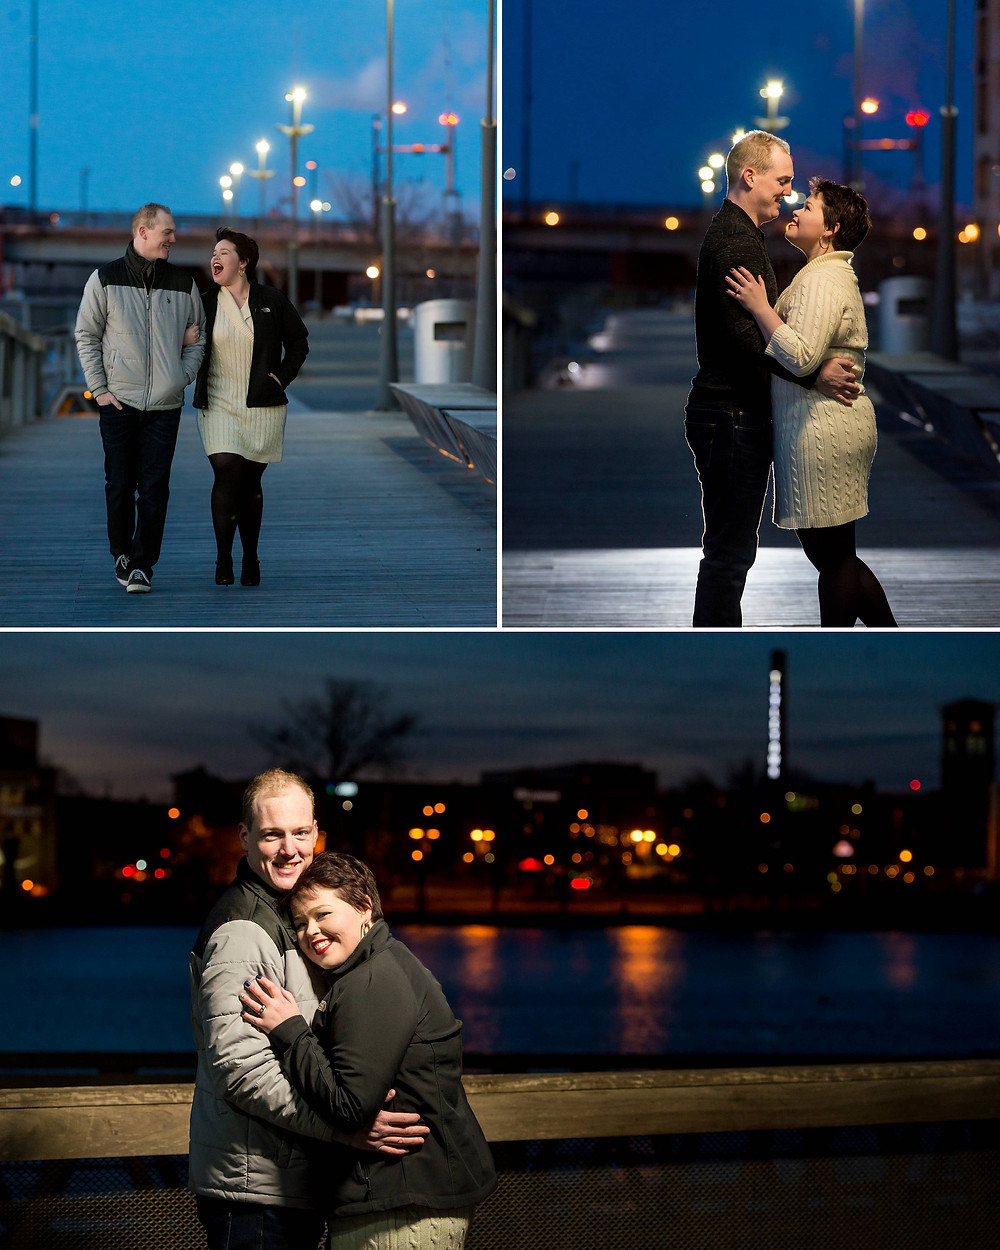 City Deck Green Bay Wisconsin Night Engagement Photos | Lanari Photography